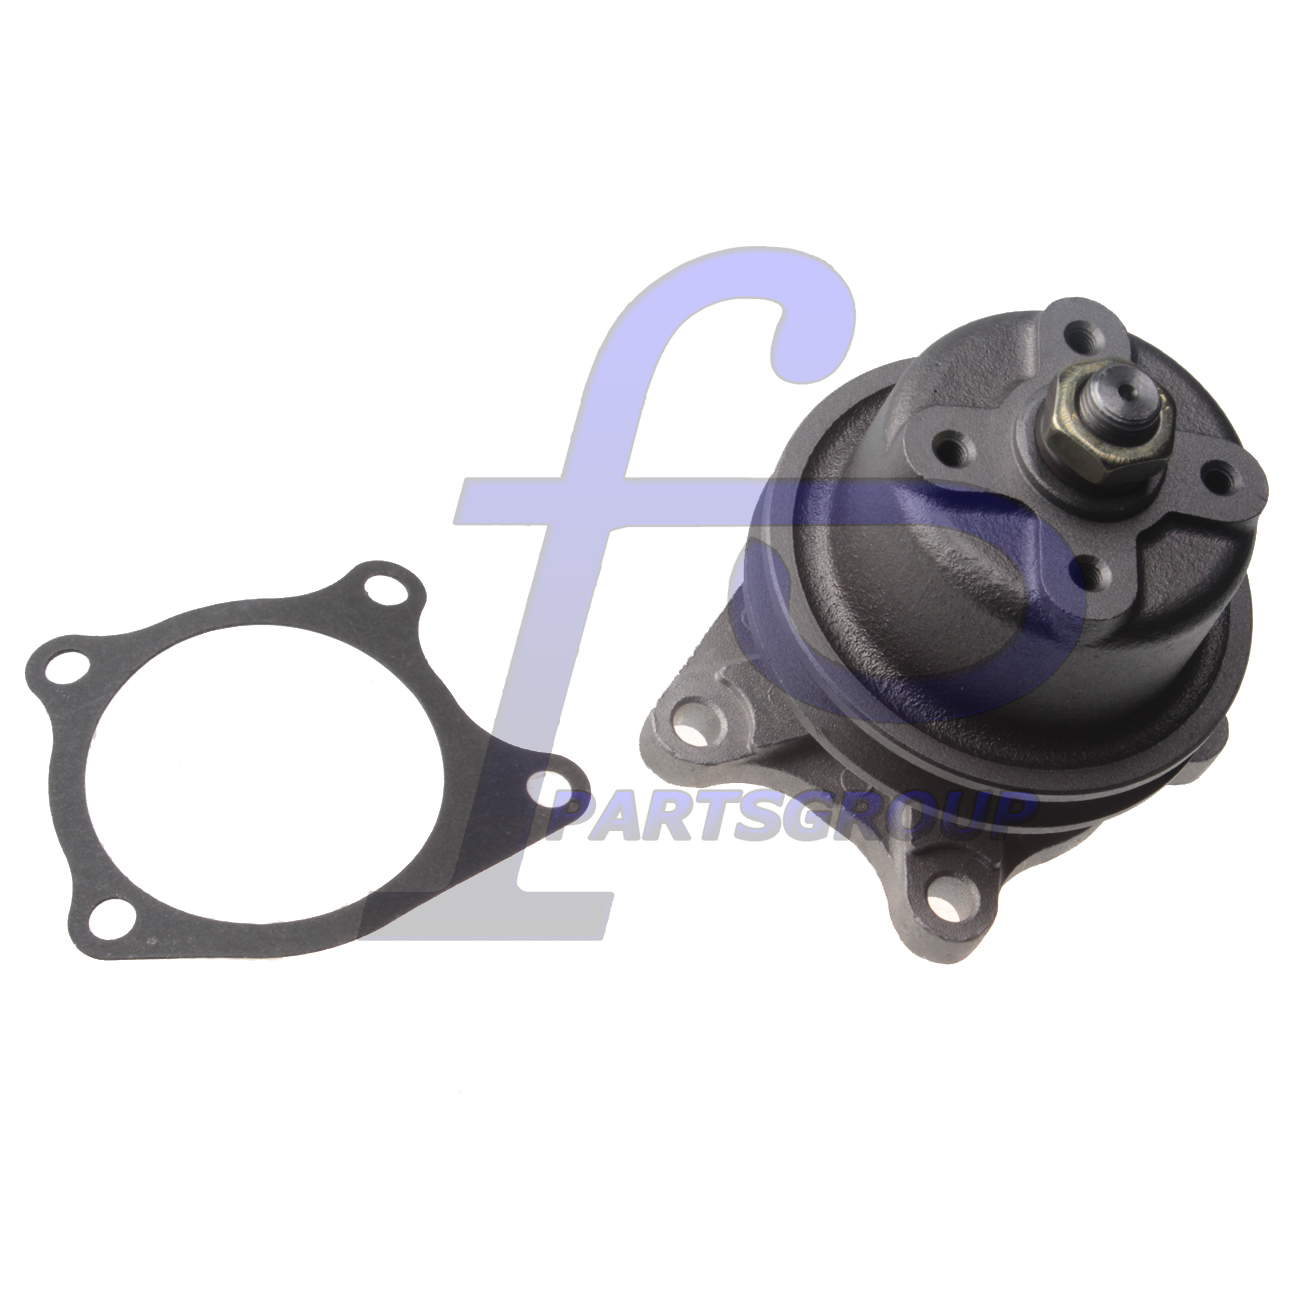 Water Pump for Kubota L245 L245DT L245F L245H L295 L295DT with Later Serial #